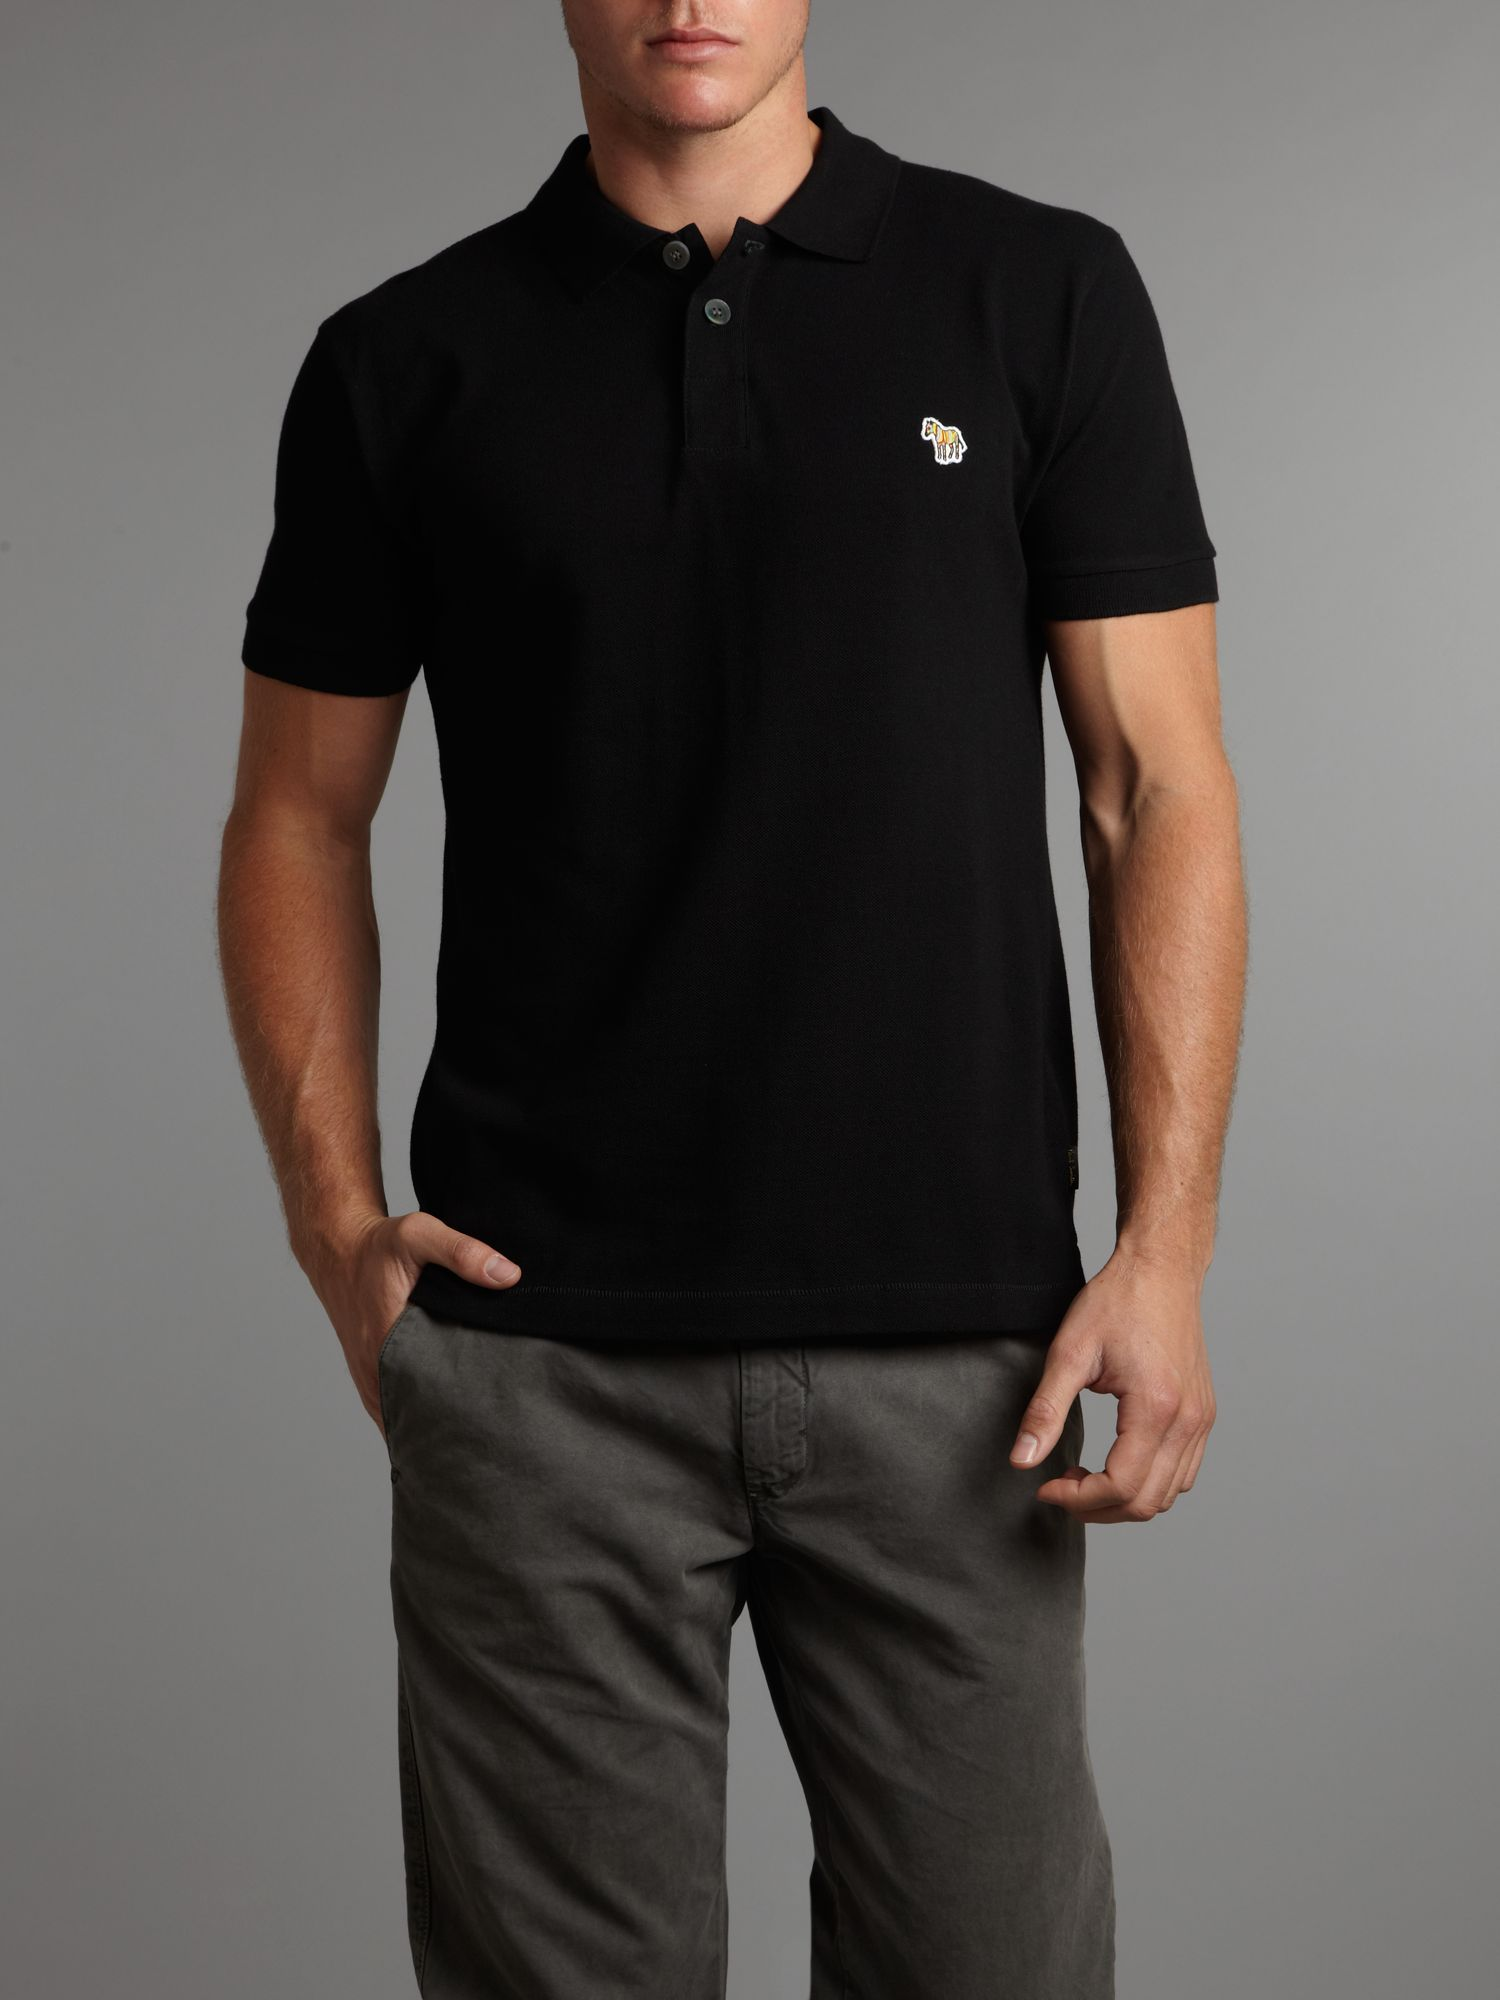 Regular zebra polo shirt